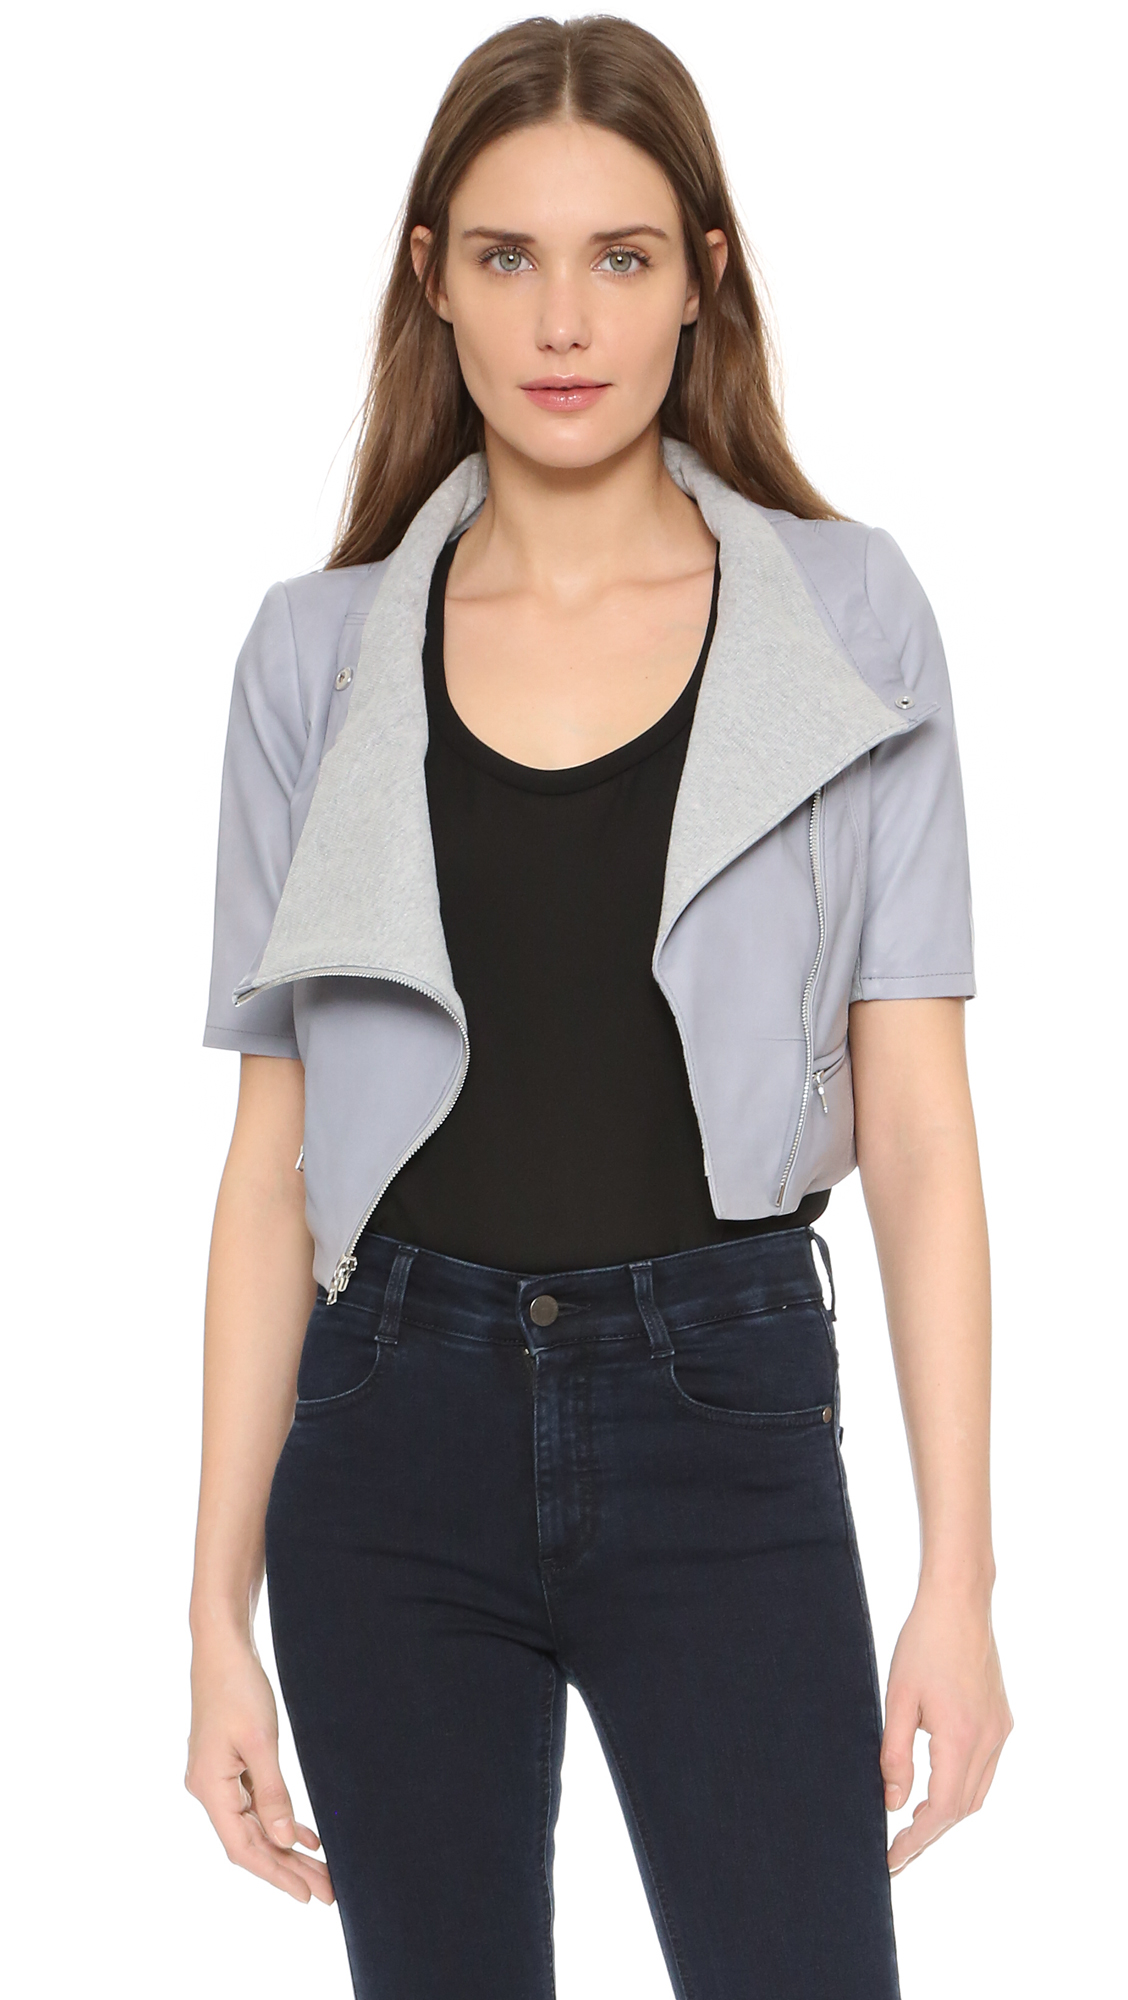 Yigal azrouël Short Sleeve Leather Jacket in Gray | Lyst